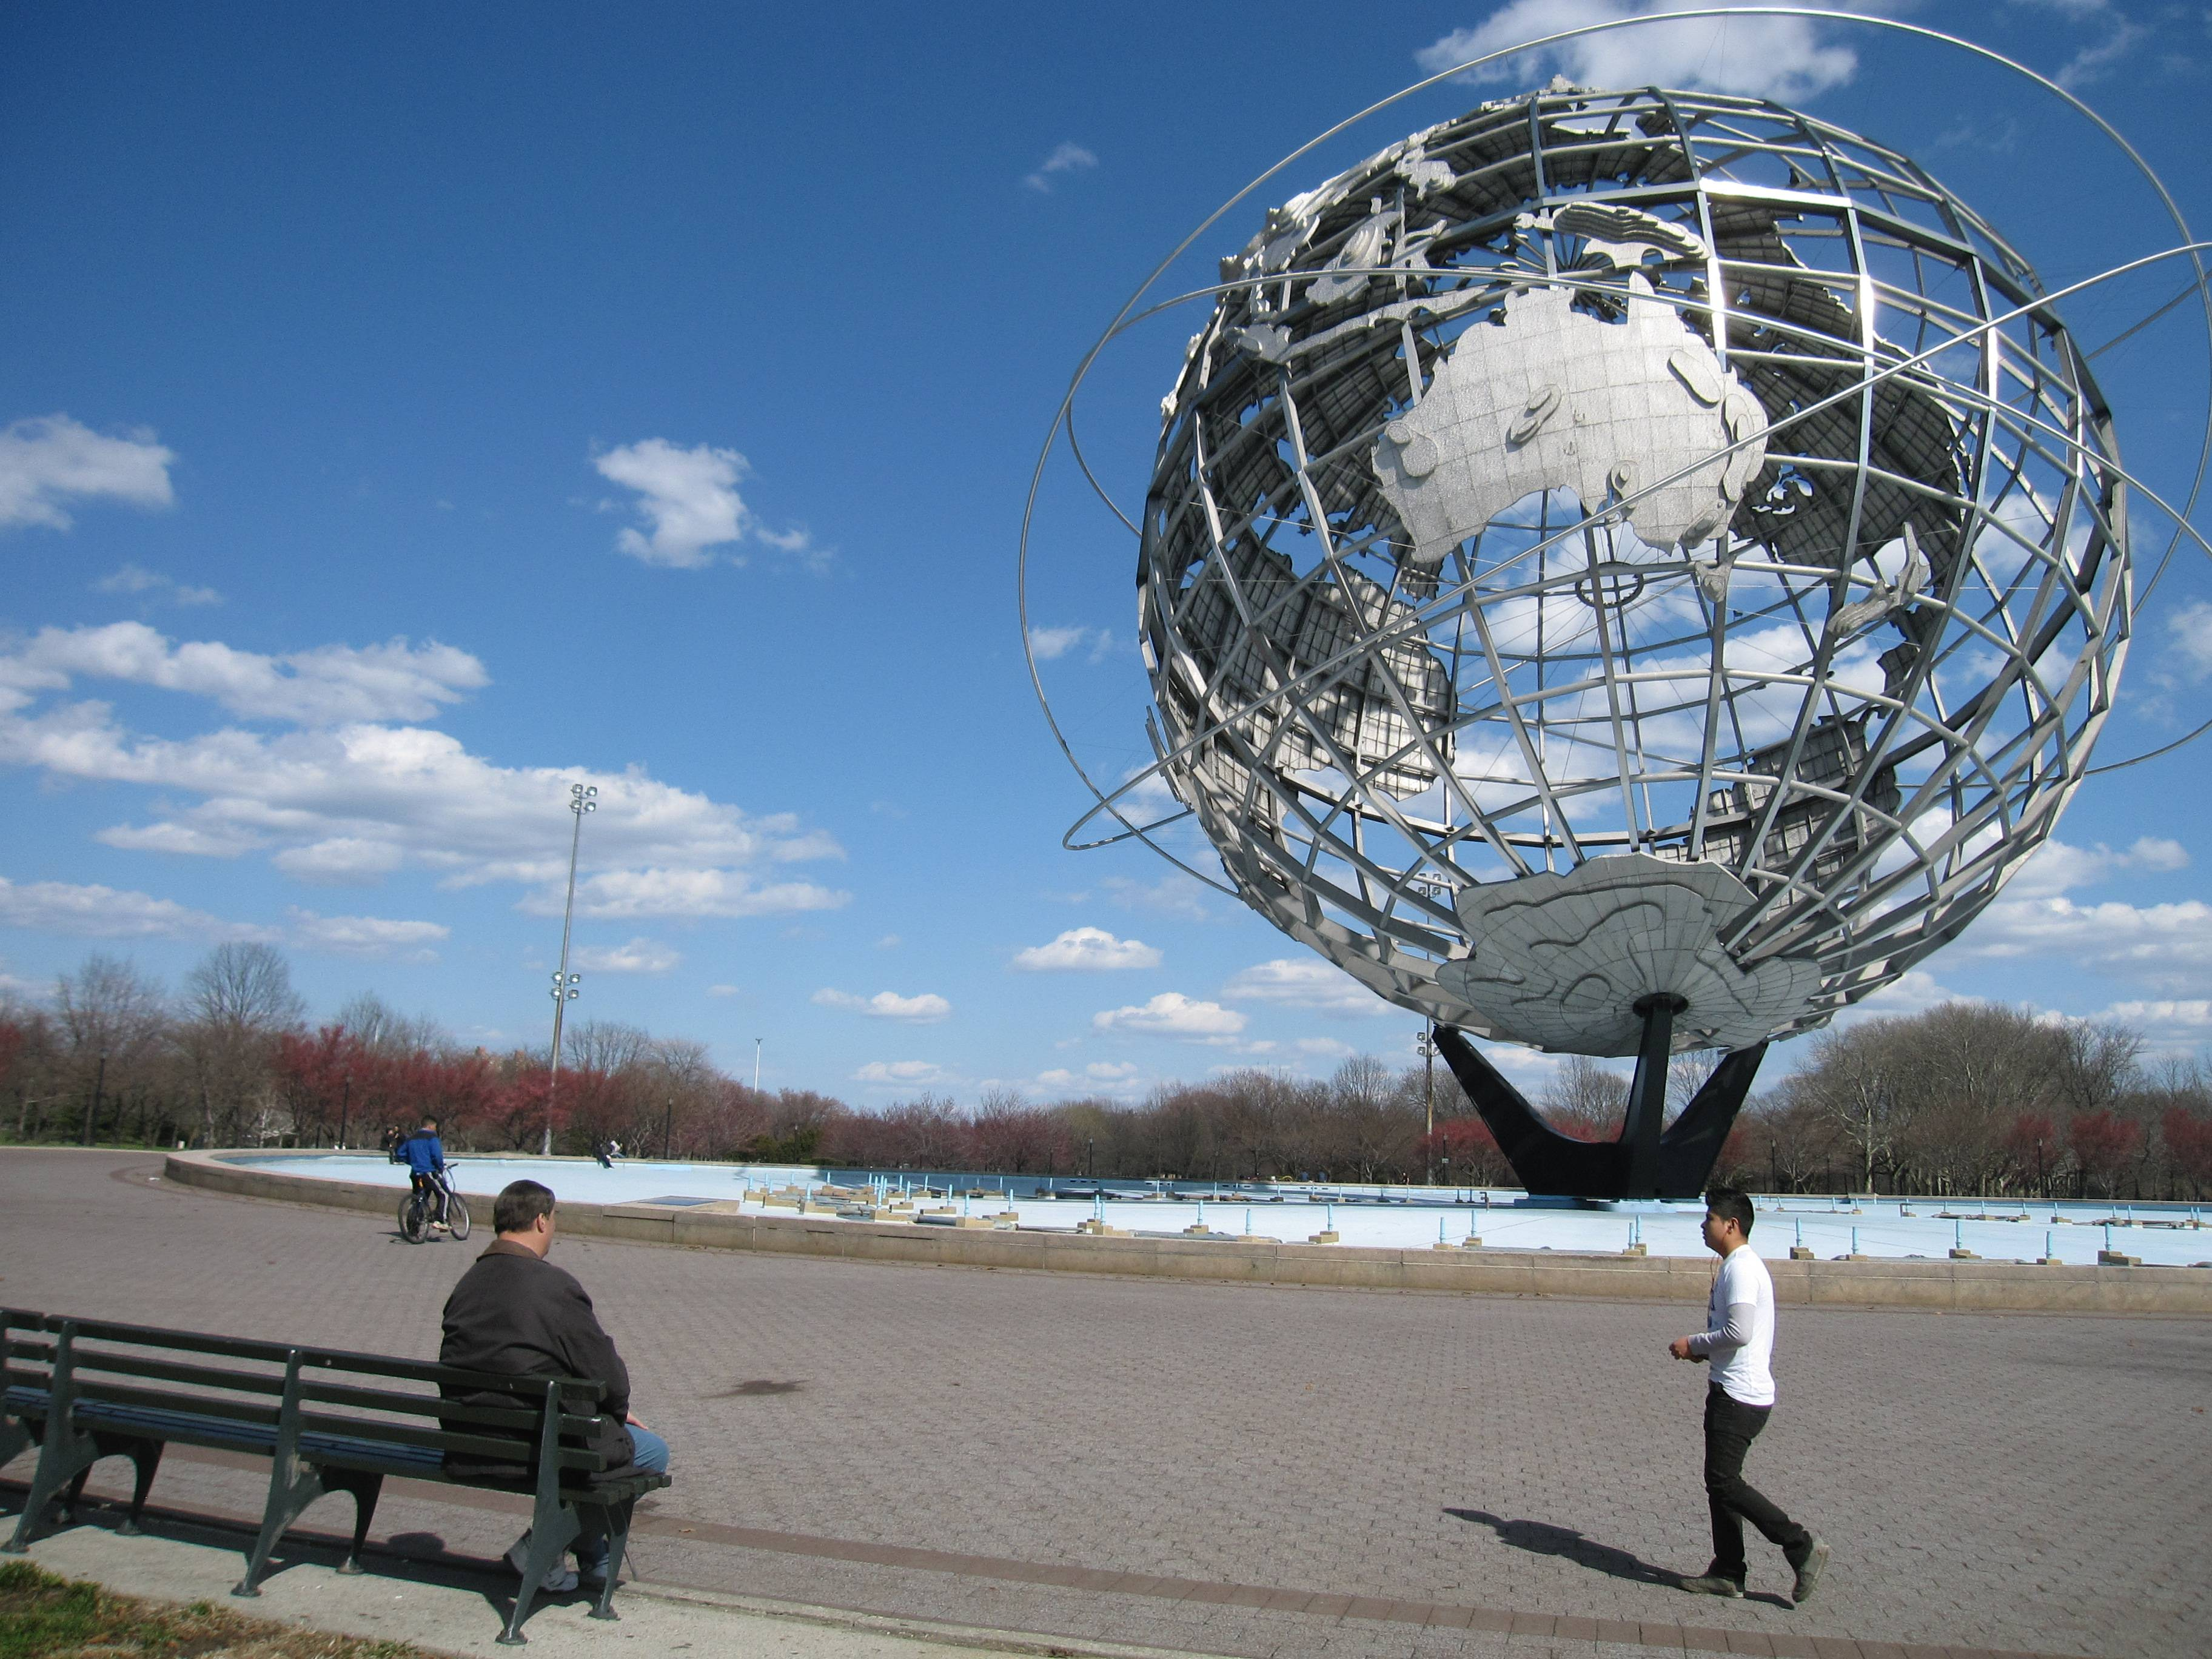 A man walks near the Unisphere, a 12-story steel globe that debuted 50 years ago at the 1964 World's Fair in the Queens borough of New York.